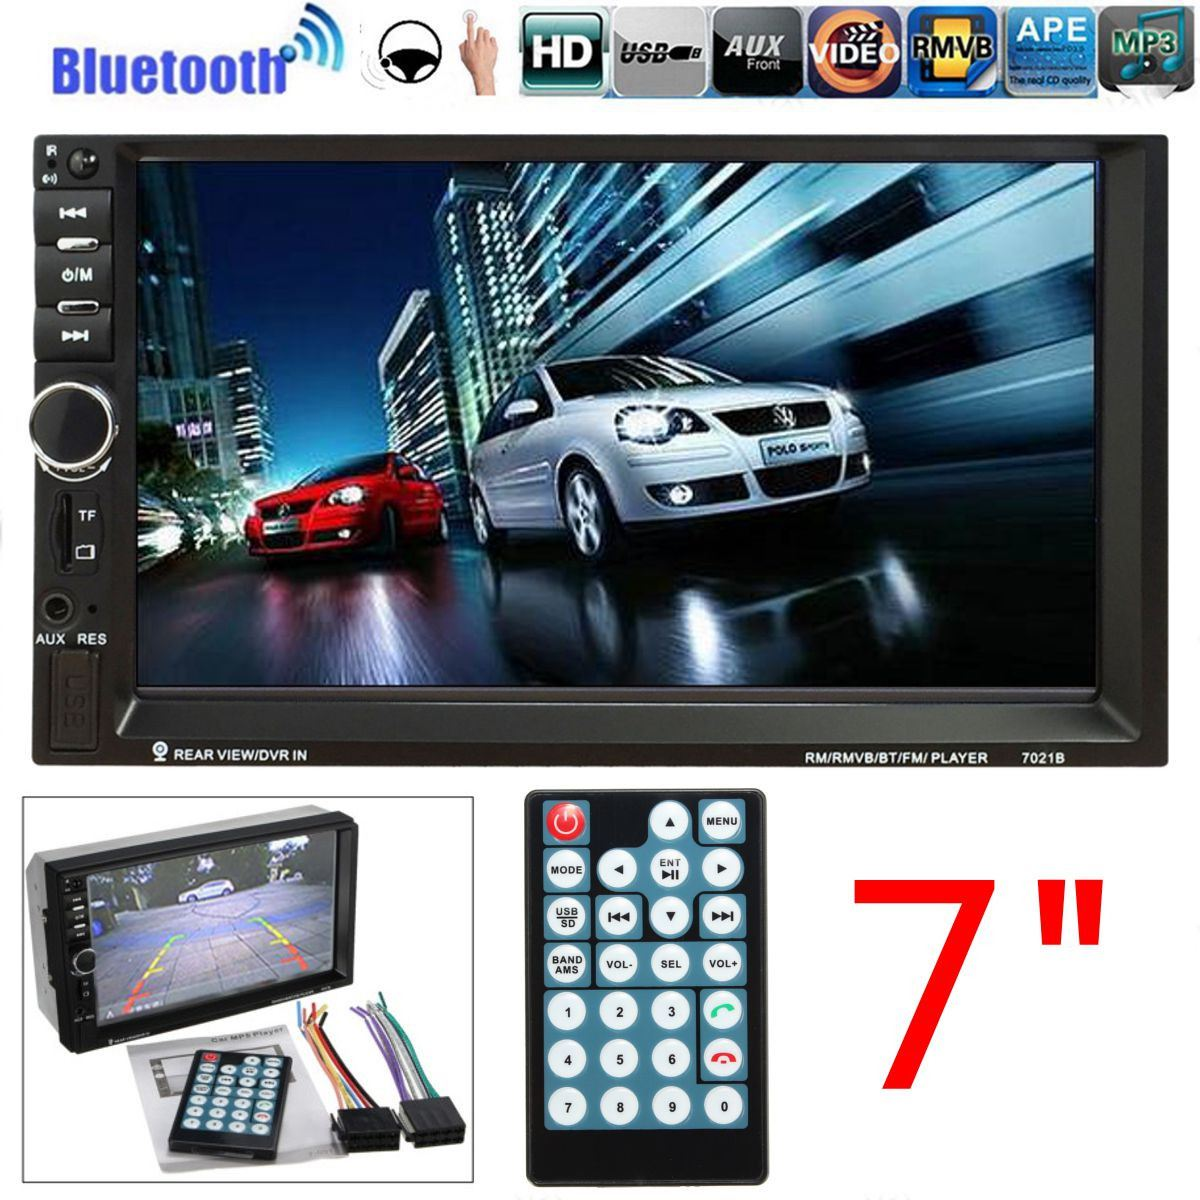 ФОТО Double Din Car Video Player 7 Inch HD Touch Screen Bluetooth Radio Audio Stereo MP5 Player Support AUX FM USB MMC Remote Control